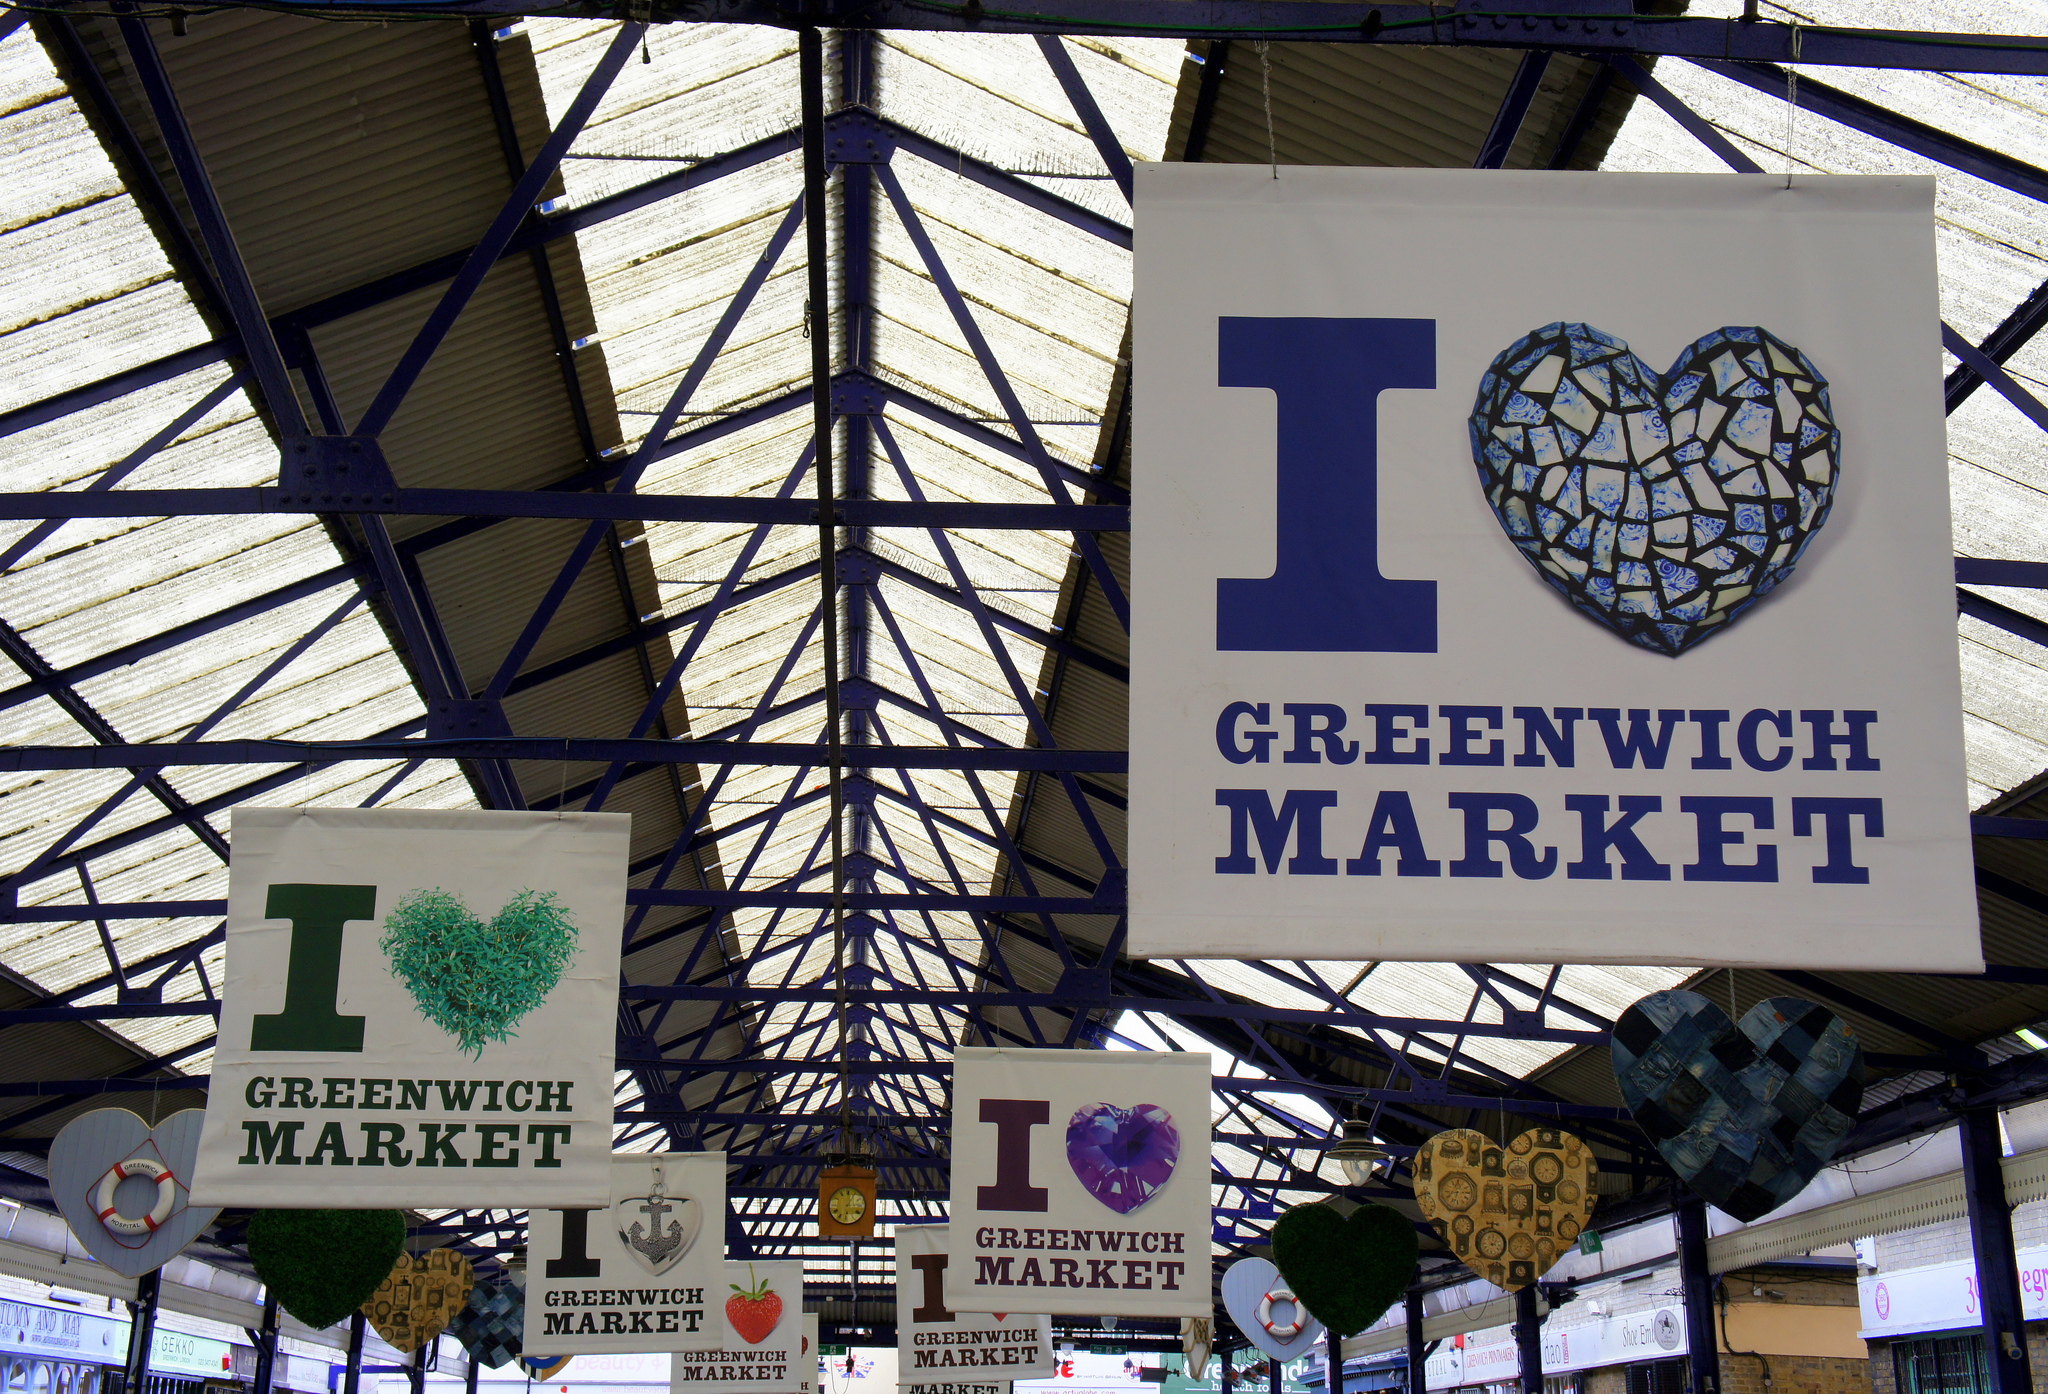 Image of I love Greenwich flags hanging in a market